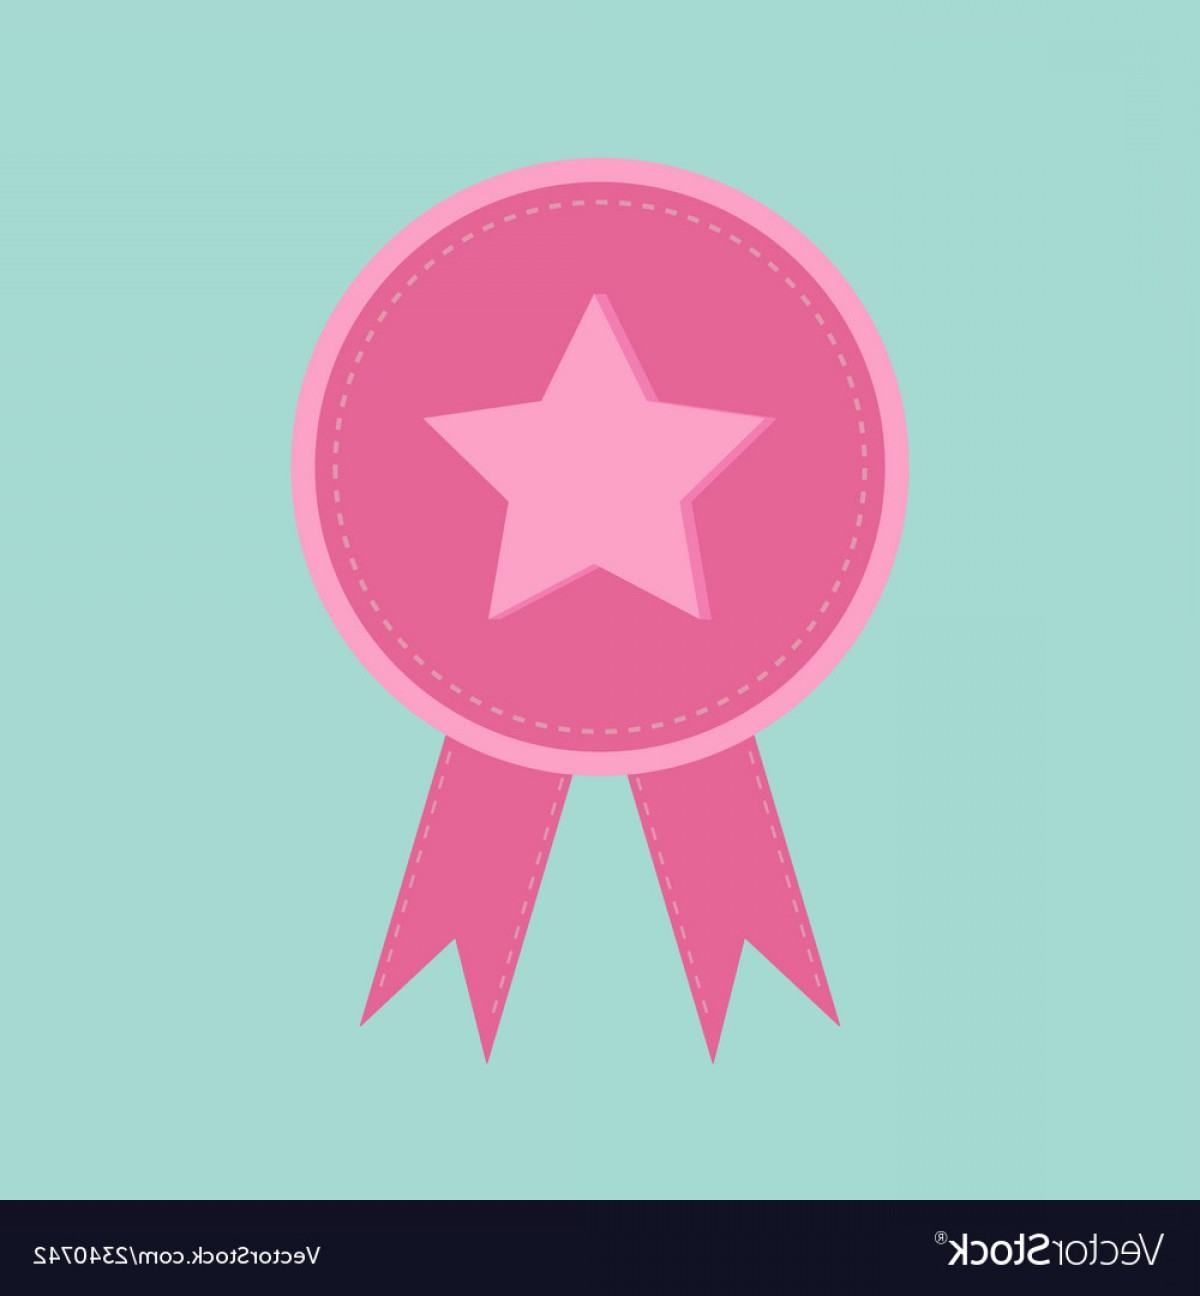 Star Badge Vector: Badge With Star And Ribbons Award Icon In Flat Vector